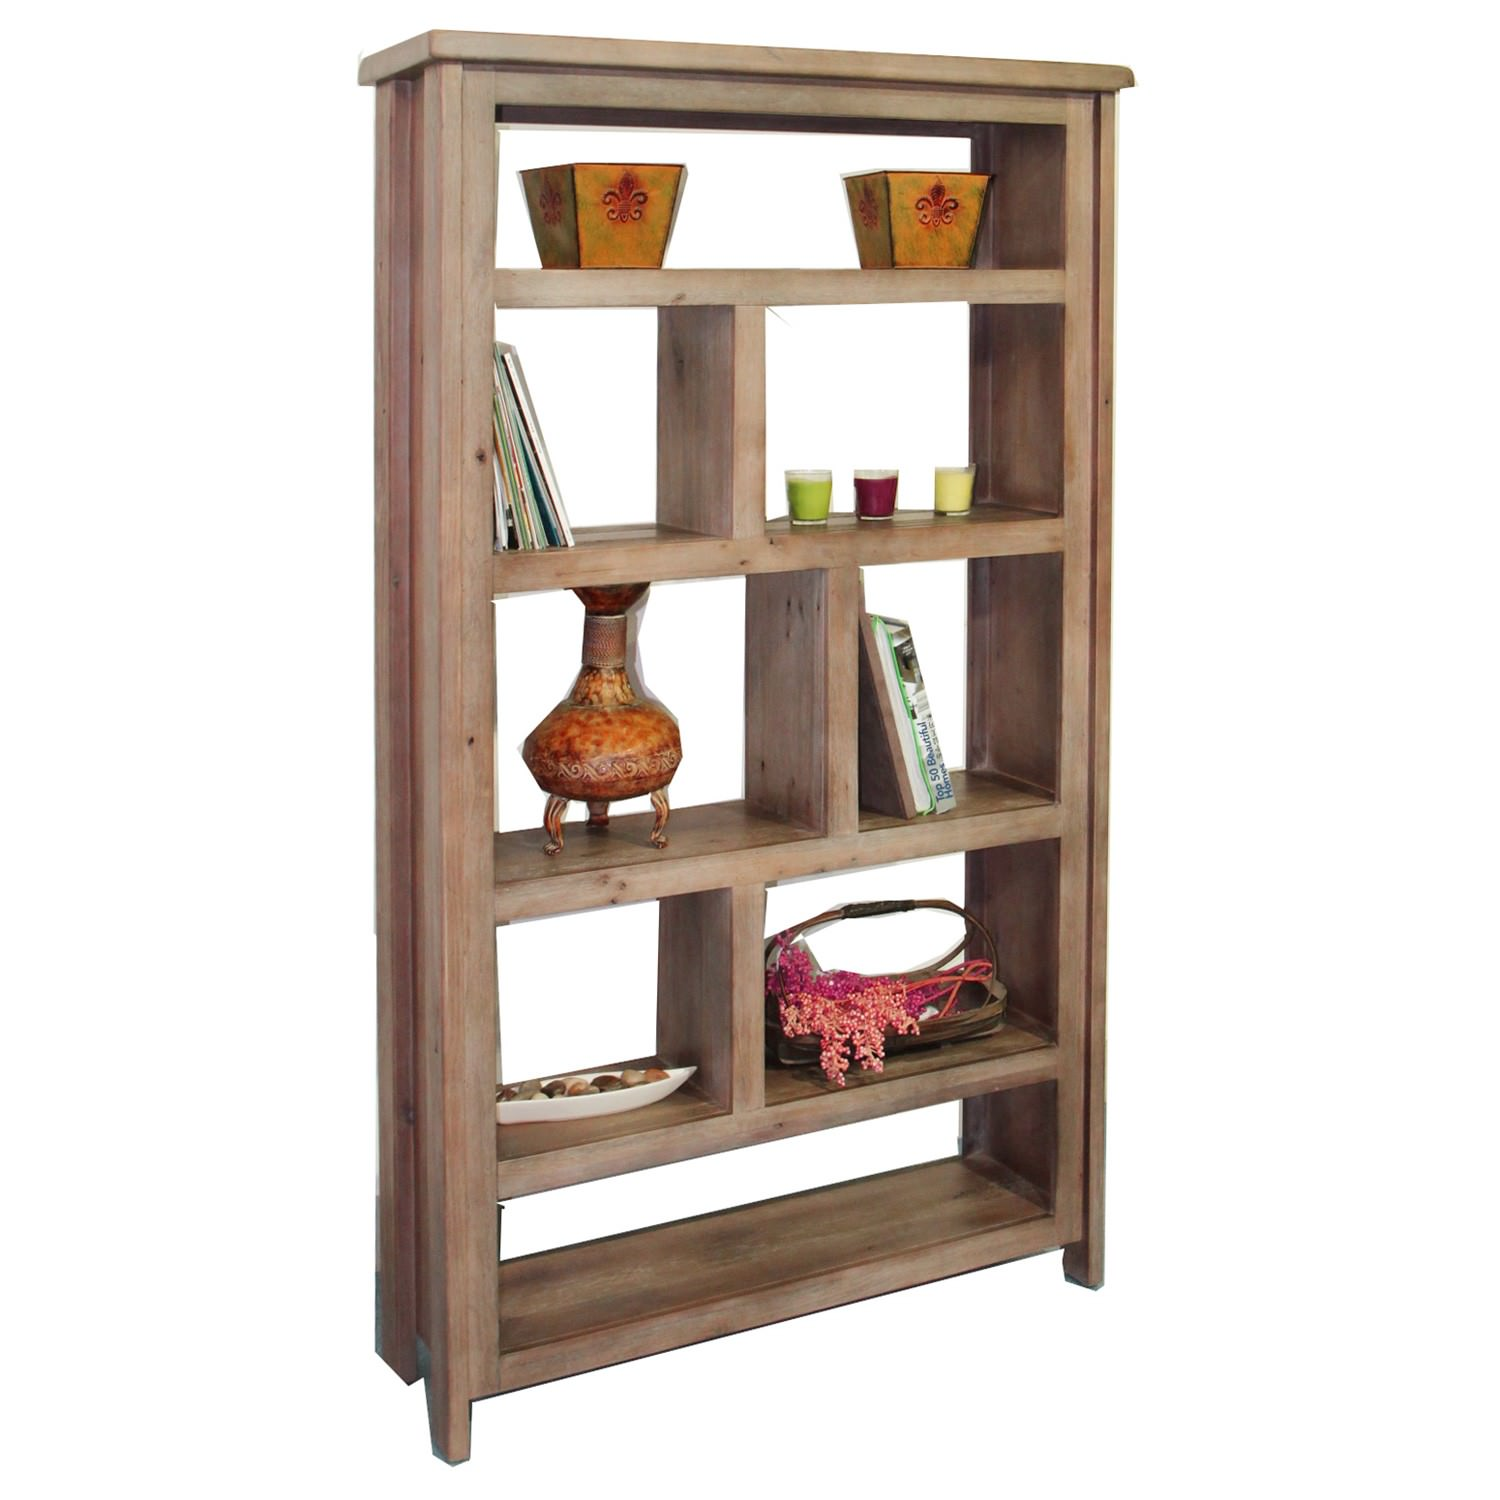 Enrifield Mountain Ash Timber Display Shelf